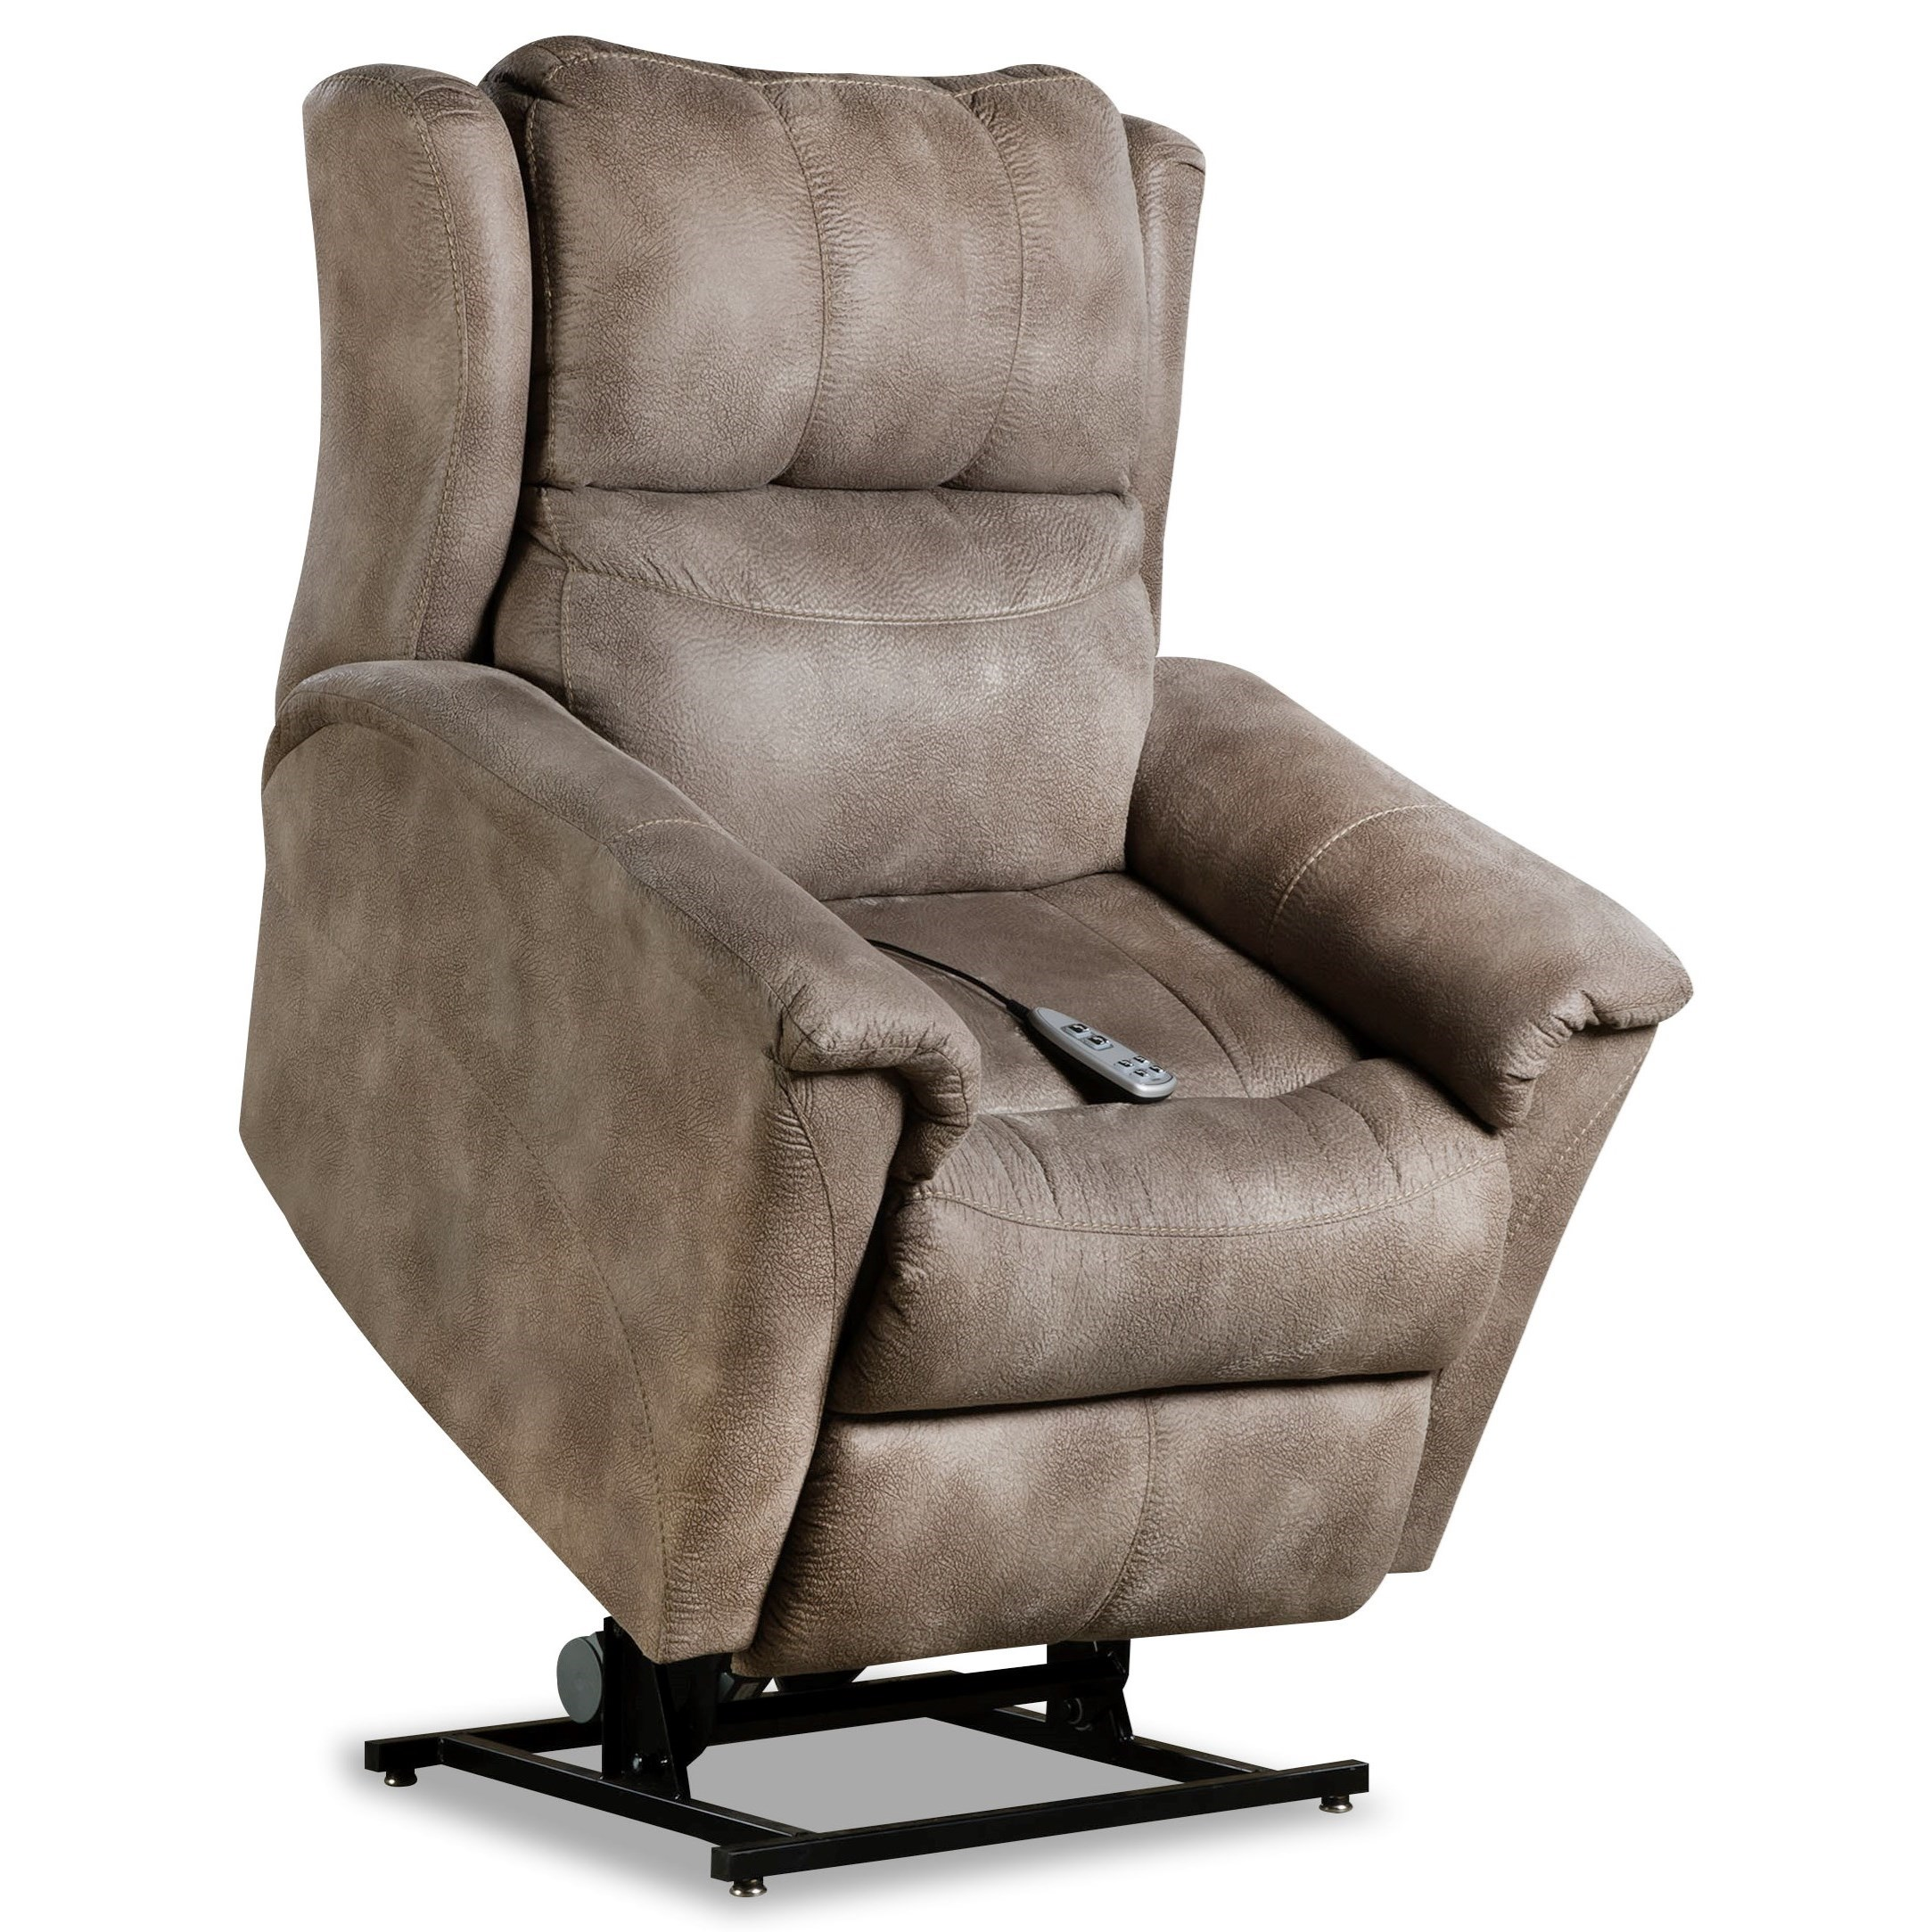 Shimmer Power Headrest Lift Recliner w/ SoCozi by Southern Motion at Becker Furniture